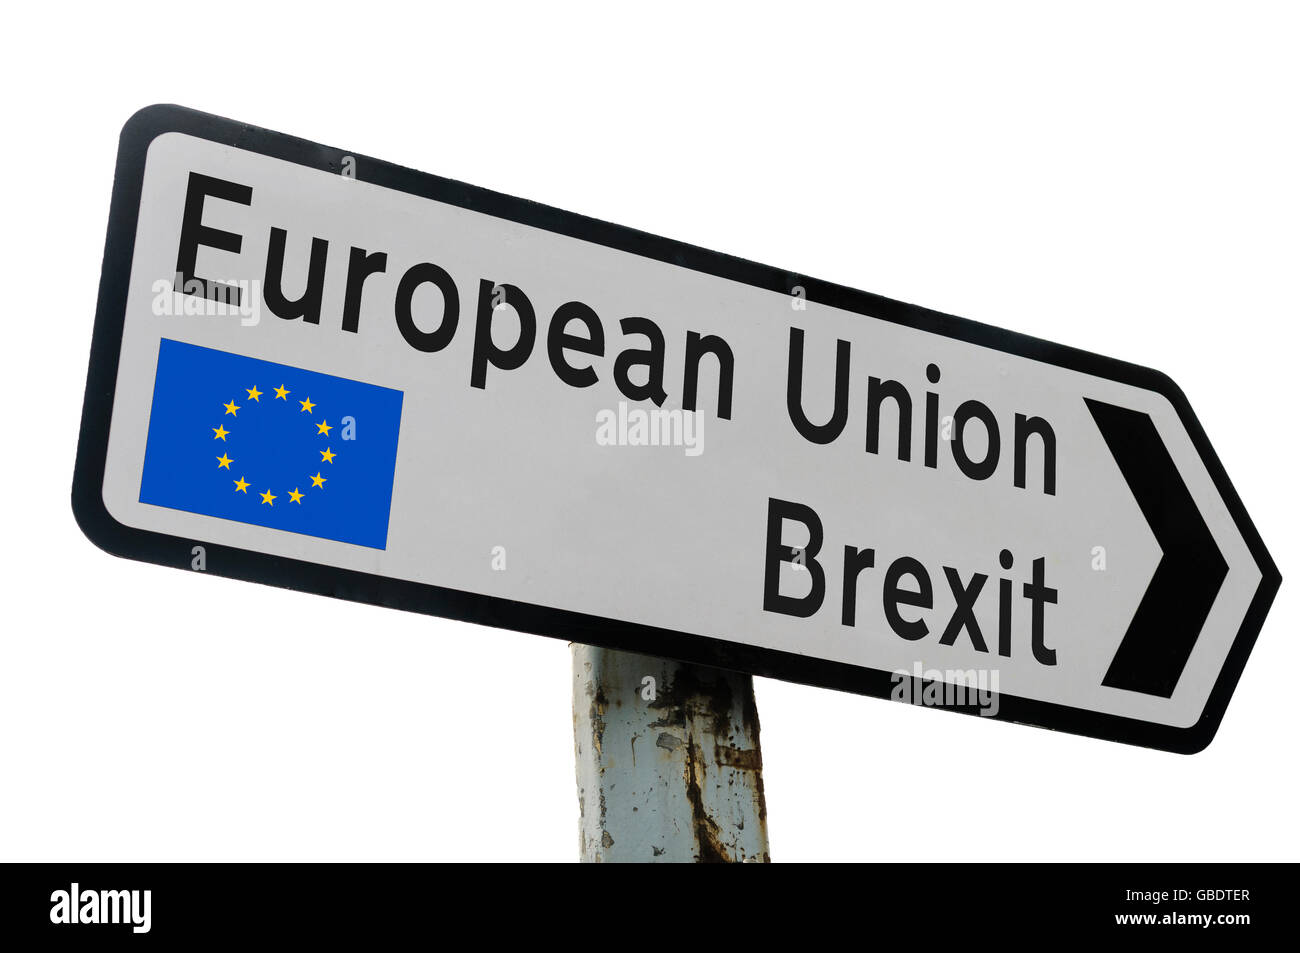 Street direction sign saying 'European Union, Brexit' with EU flag - Stock Image